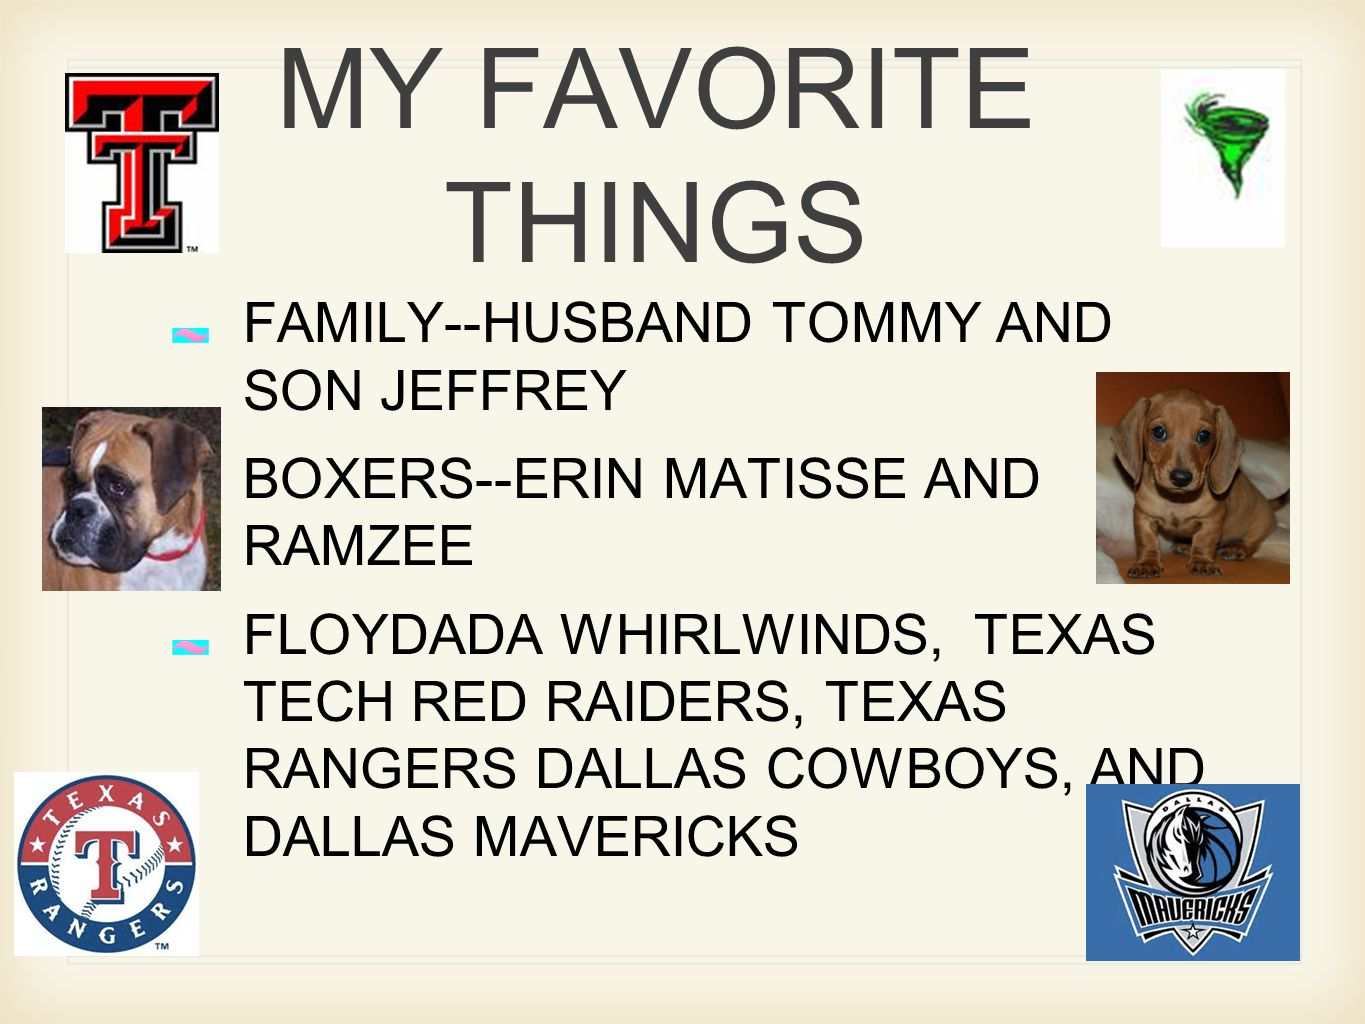 MY FAVORITE THINGS FAMILY--HUSBAND TOMMY AND SON JEFFREY BOXERS--ERIN MATISSE AND RAMZEE FLOYDADA WHIRLWINDS, TEXAS TECH RED RAIDERS, TEXAS RANGERS DALLAS COWBOYS, AND DALLAS MAVERICKS